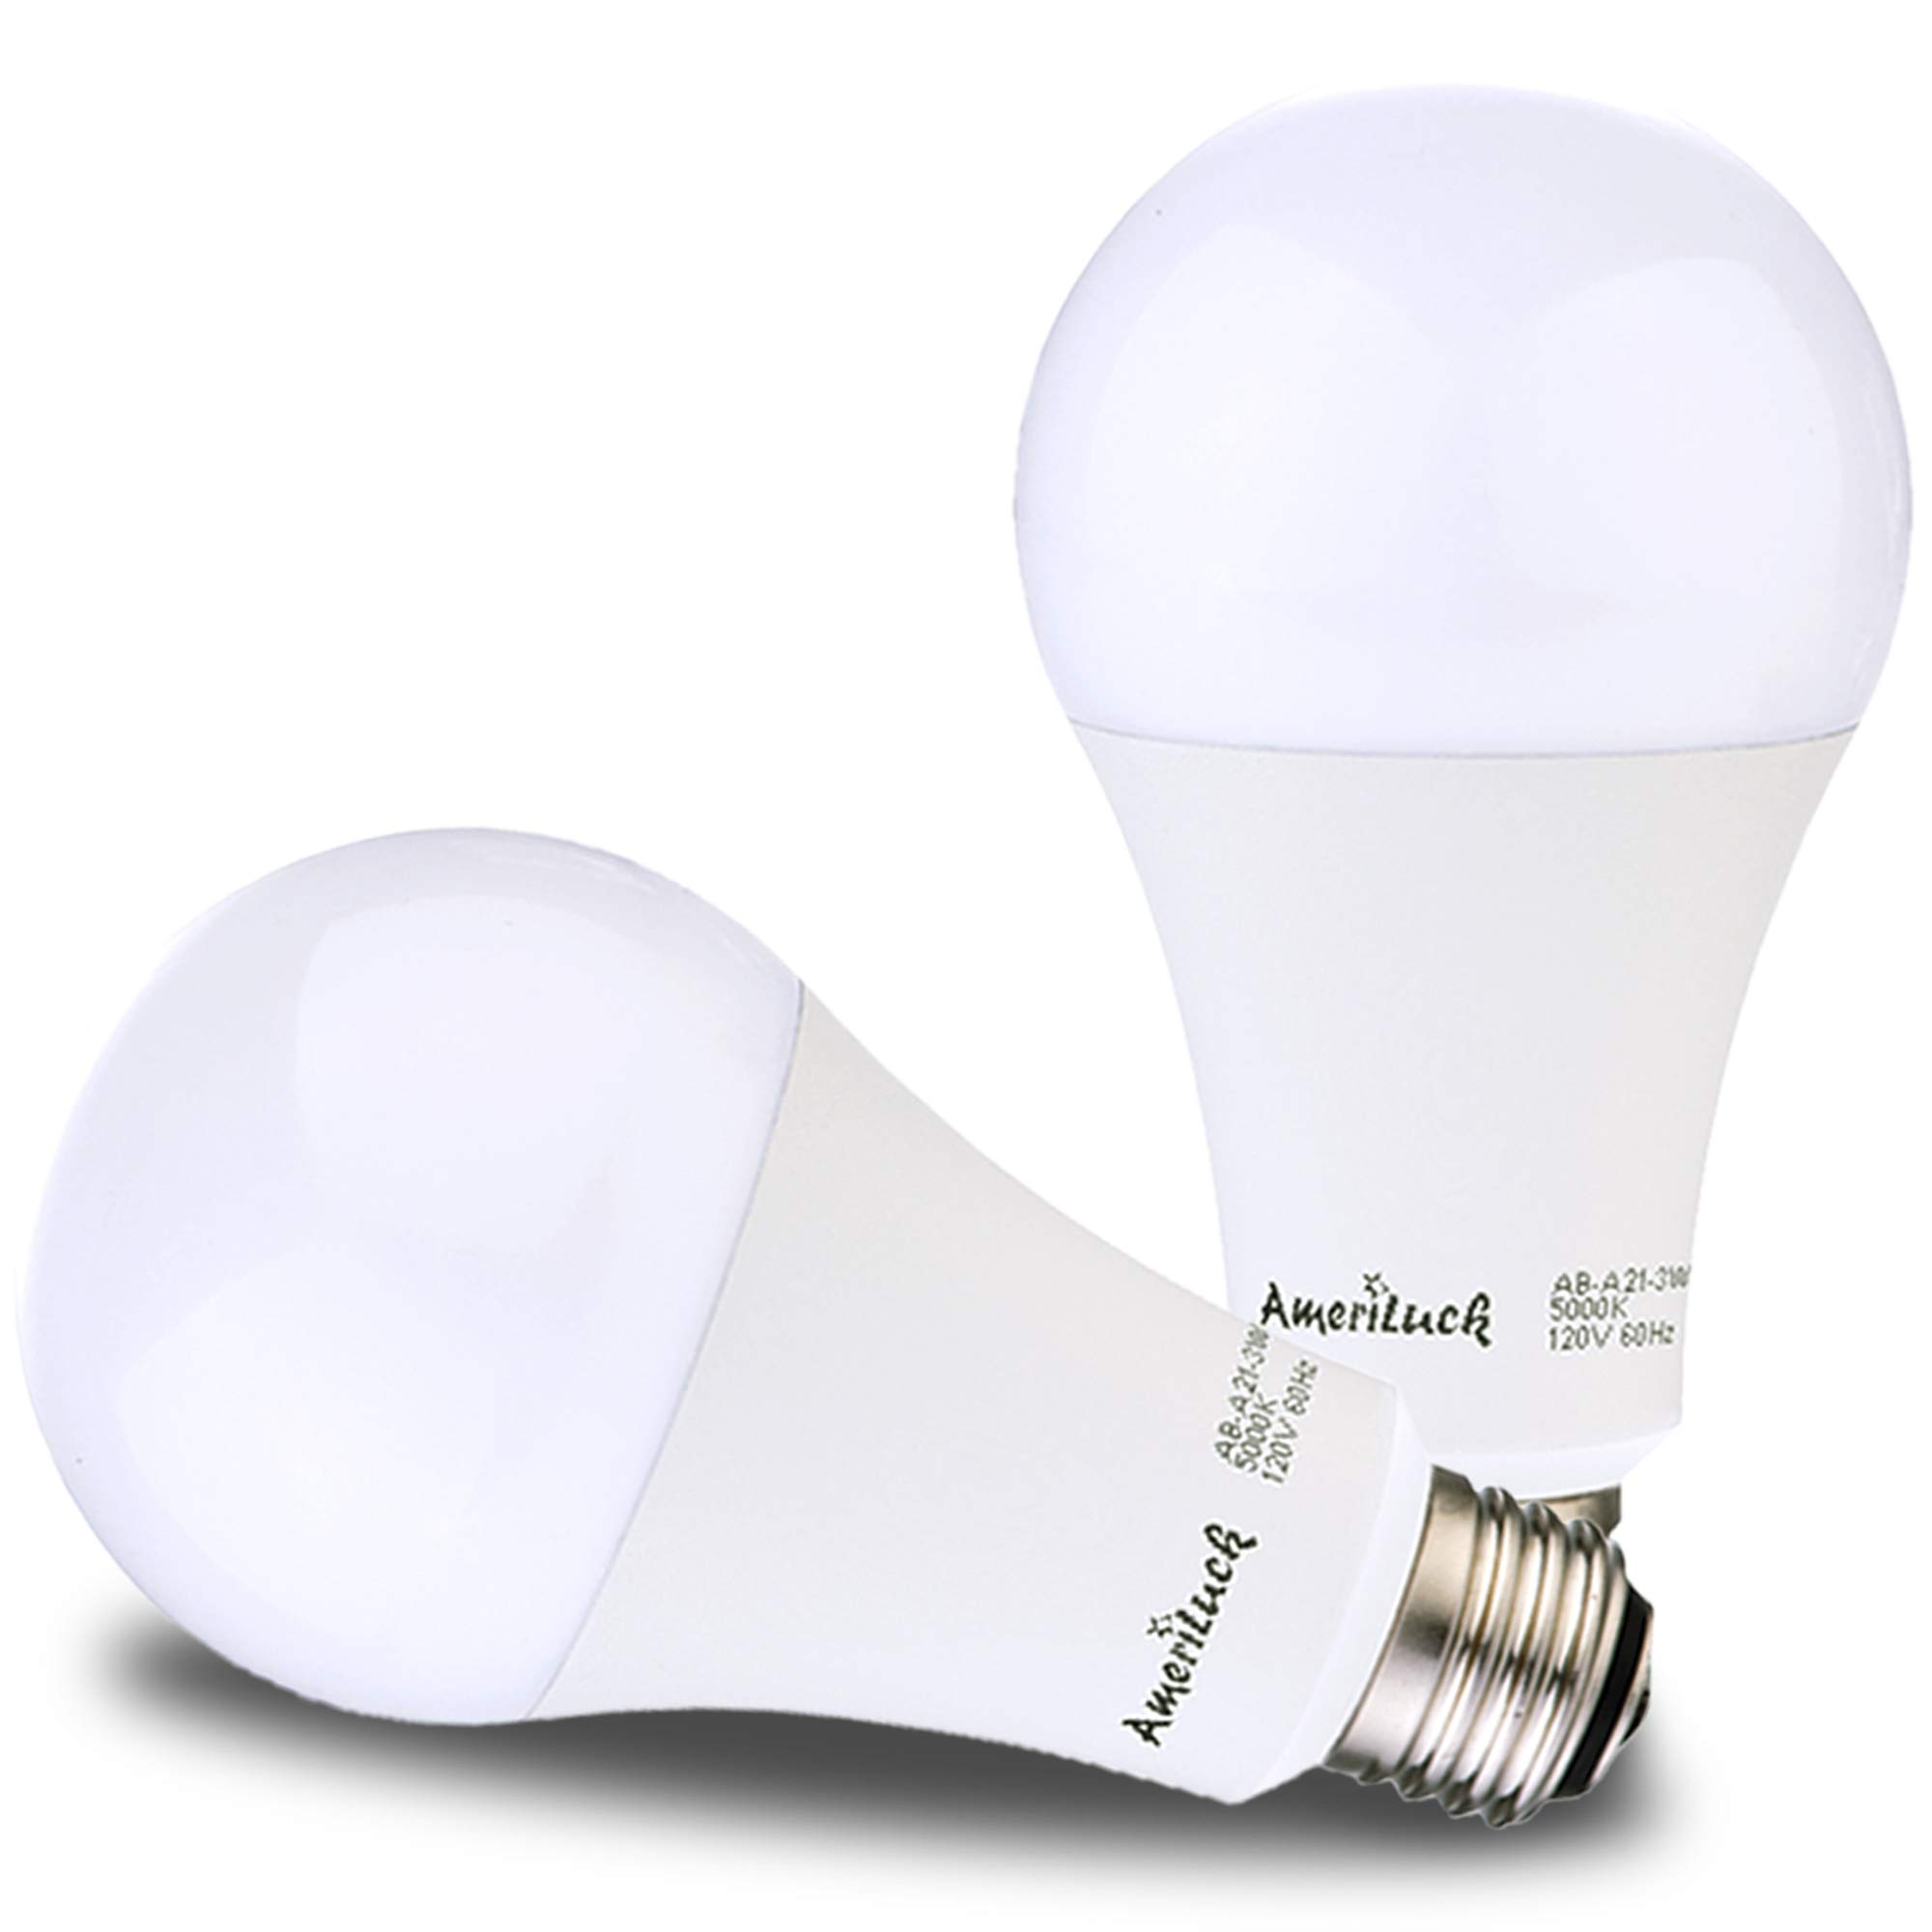 AmeriLuck LED 3-Way Light Bulb, Warm Soft White, 50-100-150W Equivalent, 800-1500-2200+Lumens, Lo-Me-Hi 7-14-20W, CRI 80+, Omni-Directional A21-UL Listed (2700K | 2 Pack)